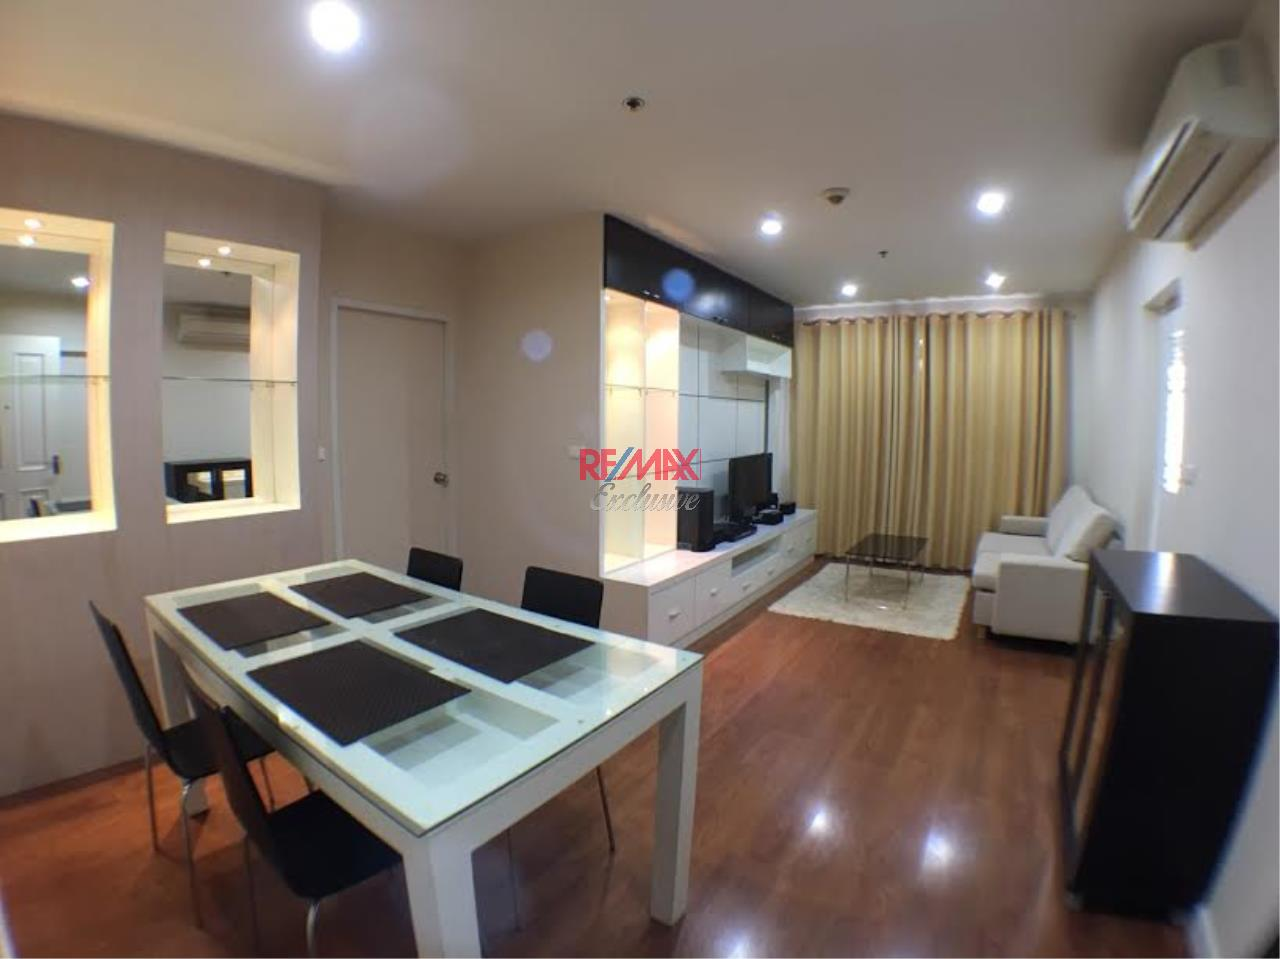 RE/MAX Exclusive Agency's 1 Bedroom at Condo One X Sukhumvit 26 For Rent 30,000 THB 3